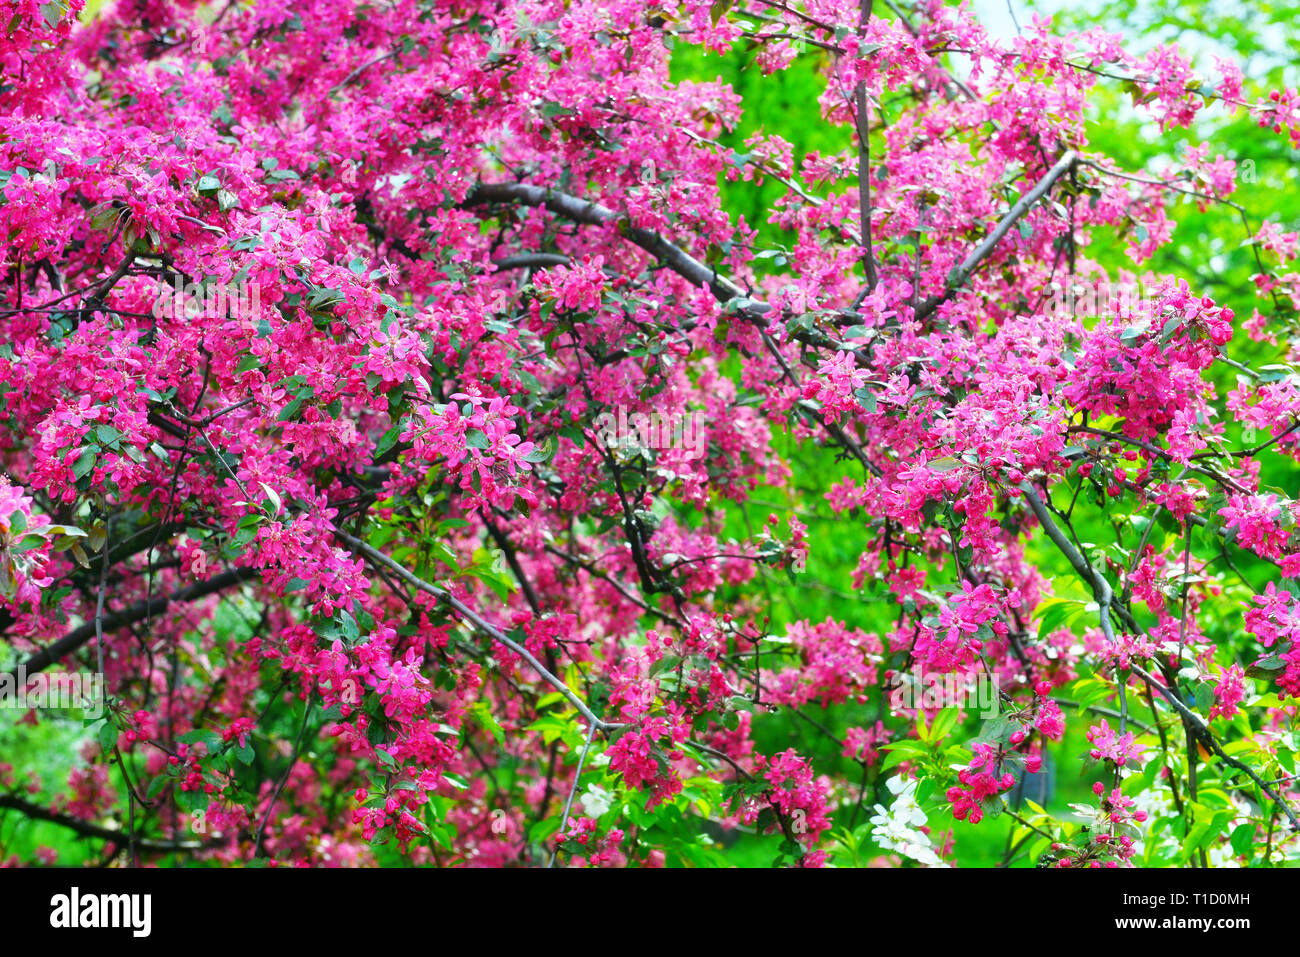 Trees in bloom in spring garden in sunny day. Fruit tree with  branches full of pink blossom. - Stock Image